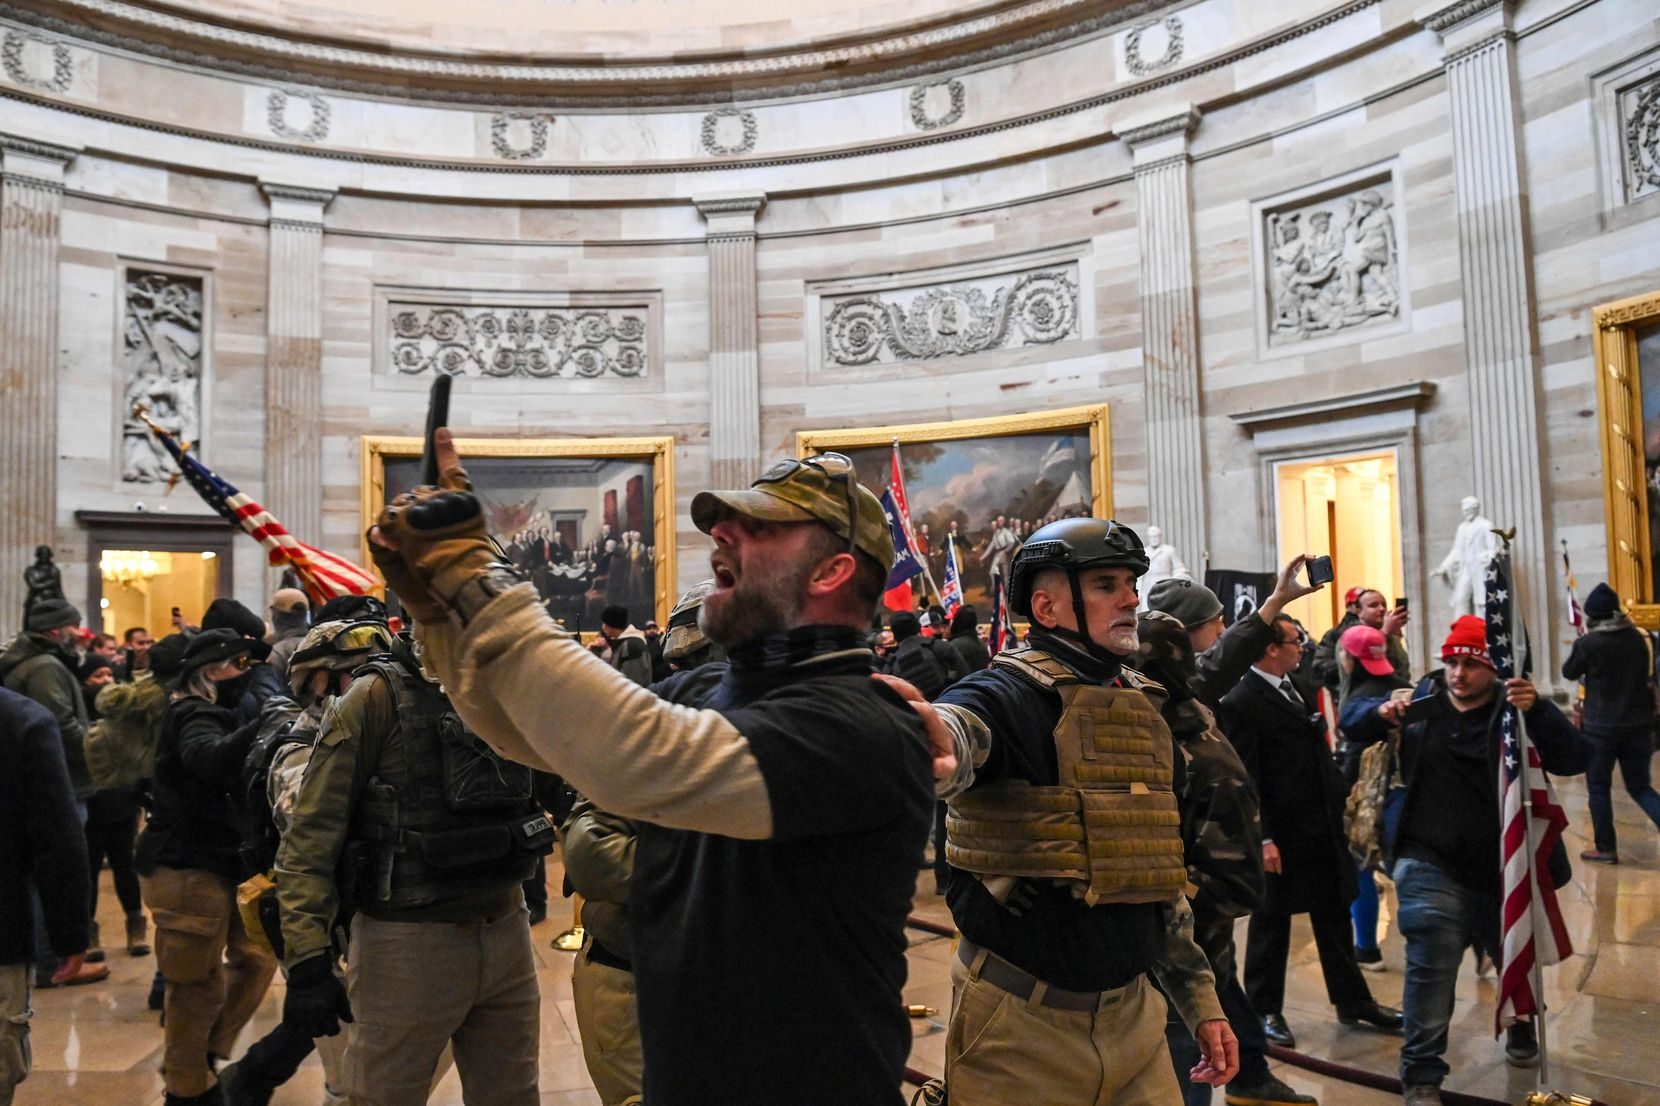 Supporters of US President Donald Trump enter the US Capitol's Rotunda on January 6, 2021, in Washington, DC. - Demonstrators breeched security and entered the Capitol as Congress debated the a 2020 presidential election Electoral Vote Certification.